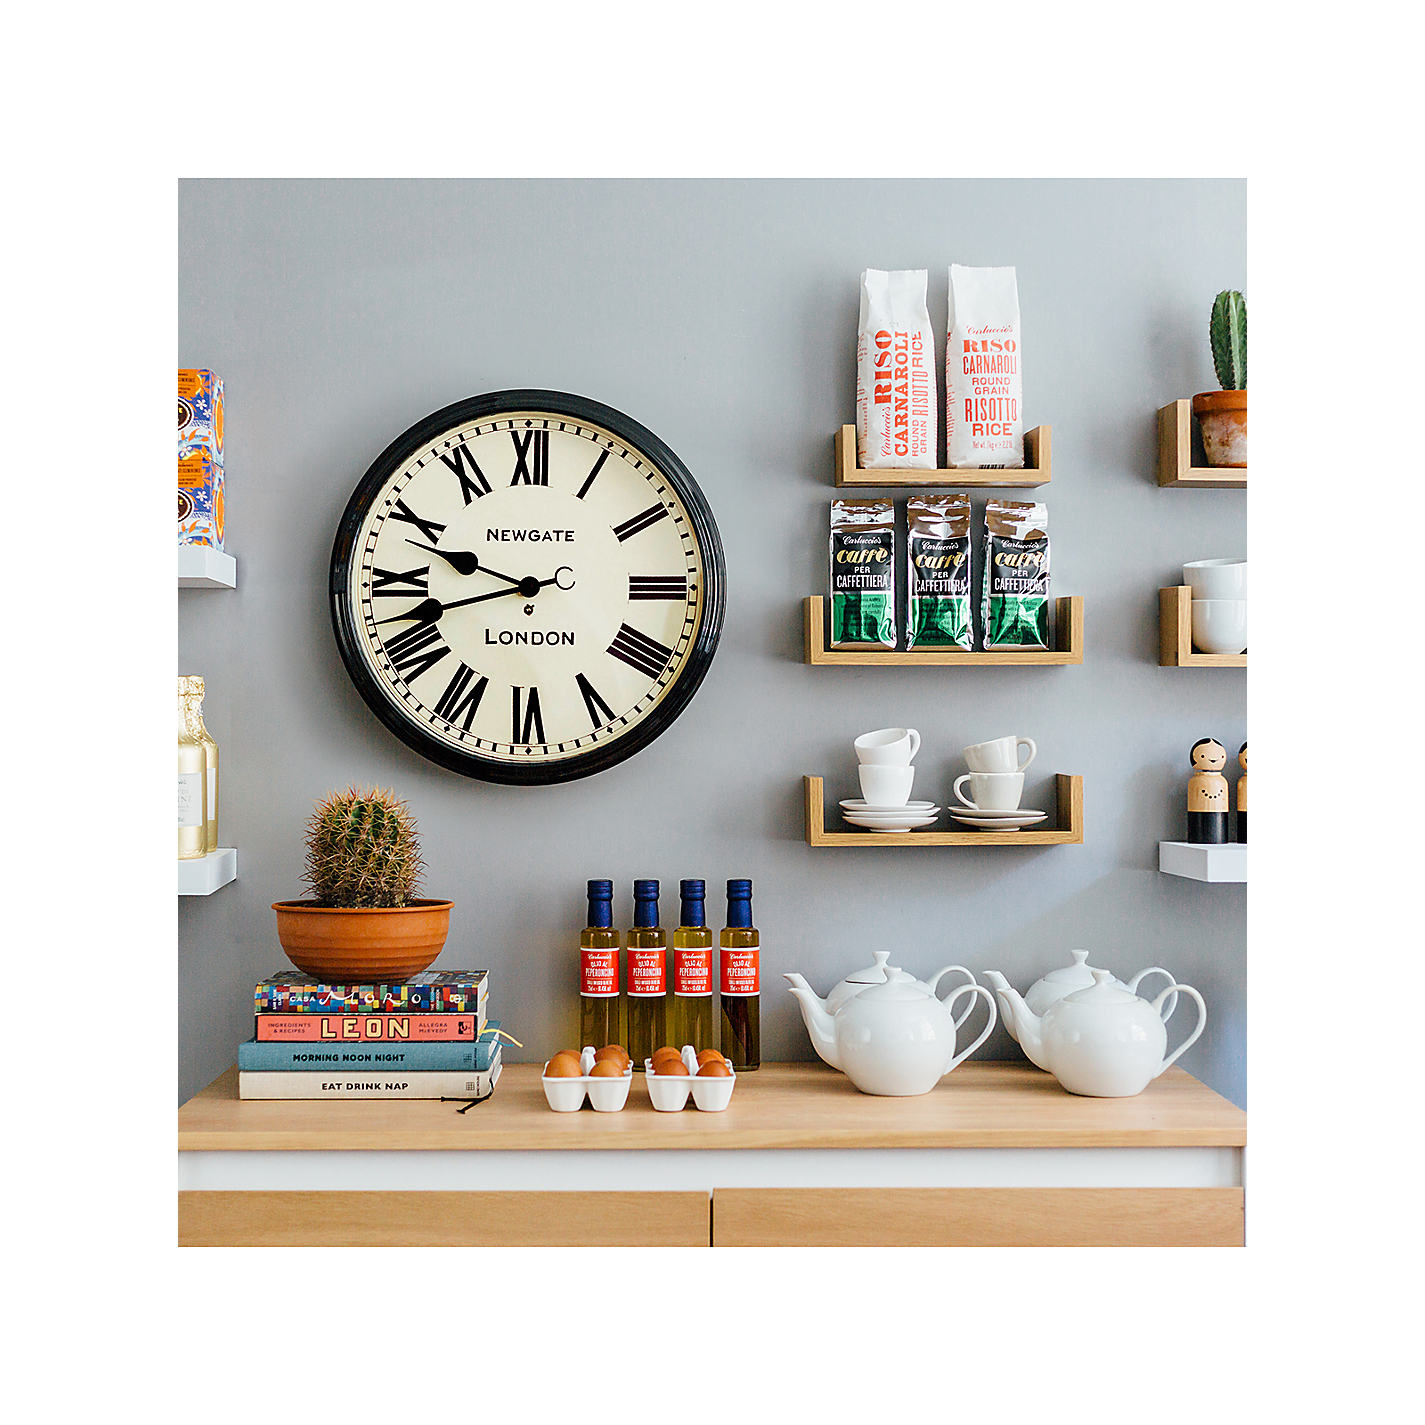 Buy newgate battersby wall clock dia50cm john lewis buy newgate battersby wall clock dia50cm online at johnlewis amipublicfo Images